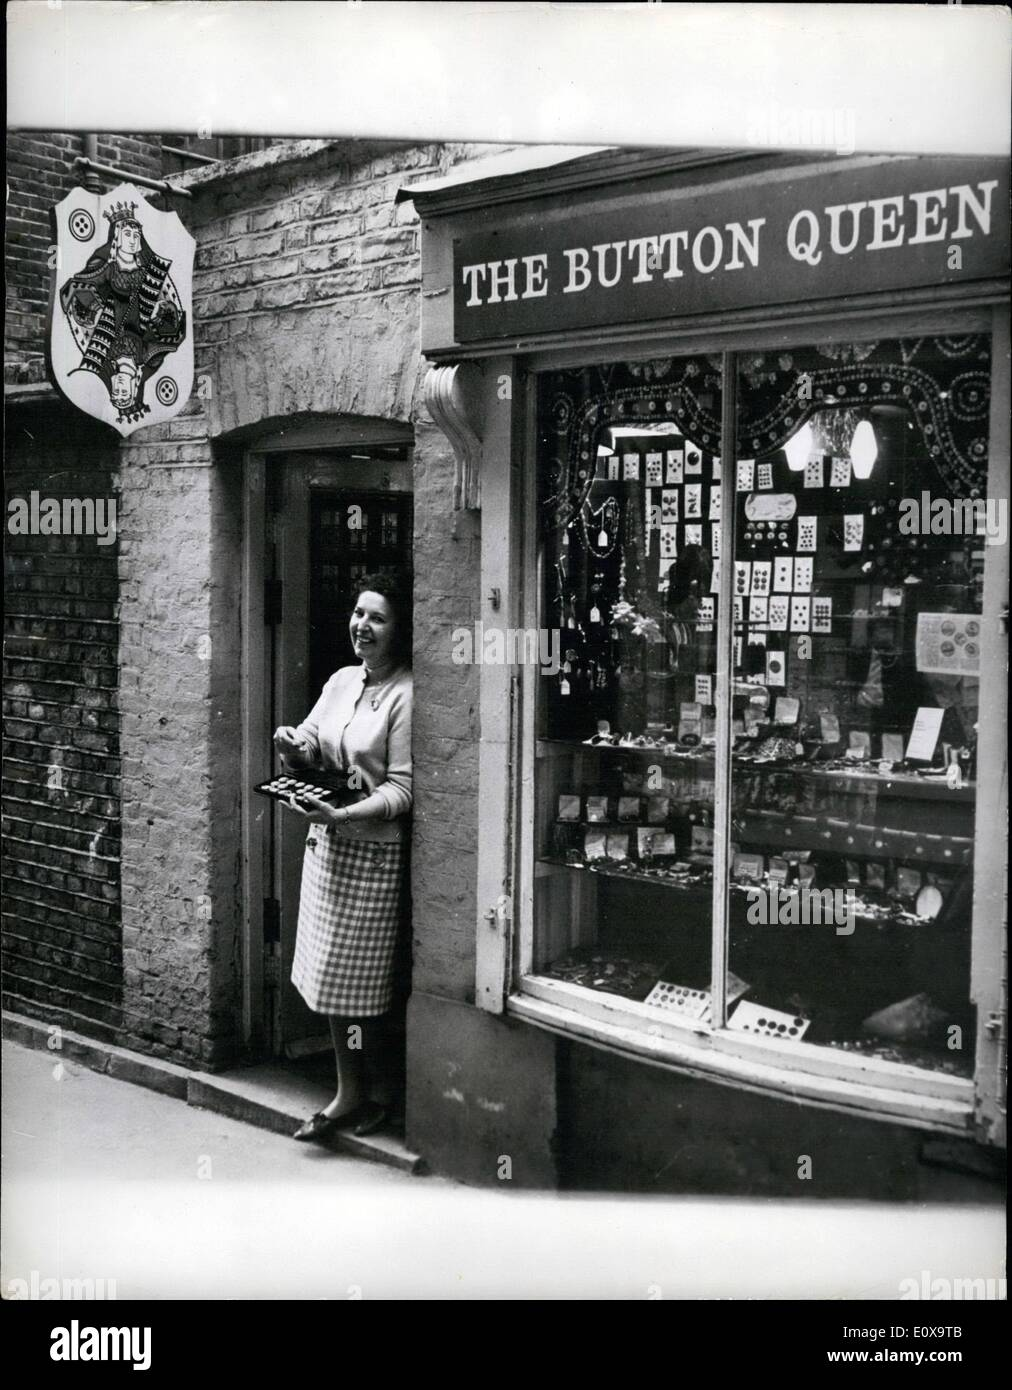 Oct. 10, 1965 - The Button Queen: Buttons, those vital parts of one's clothing, are rapidly taking their place along side stamps and coins as valuable collector's items. They are also helping the export drive 80 per cent of all antique buttons sold in Britain go to America, where button collection is second only to philately. In London, MRS. Toni Frith, whose 14-year association with buttons has earned the name 'The Button Queen', has graduated from a stall in the famous Portobello Road, to a comfortable shop in Marlborough Court off Carnaby-street, Westminster. Photo shows Mrs - Stock Image